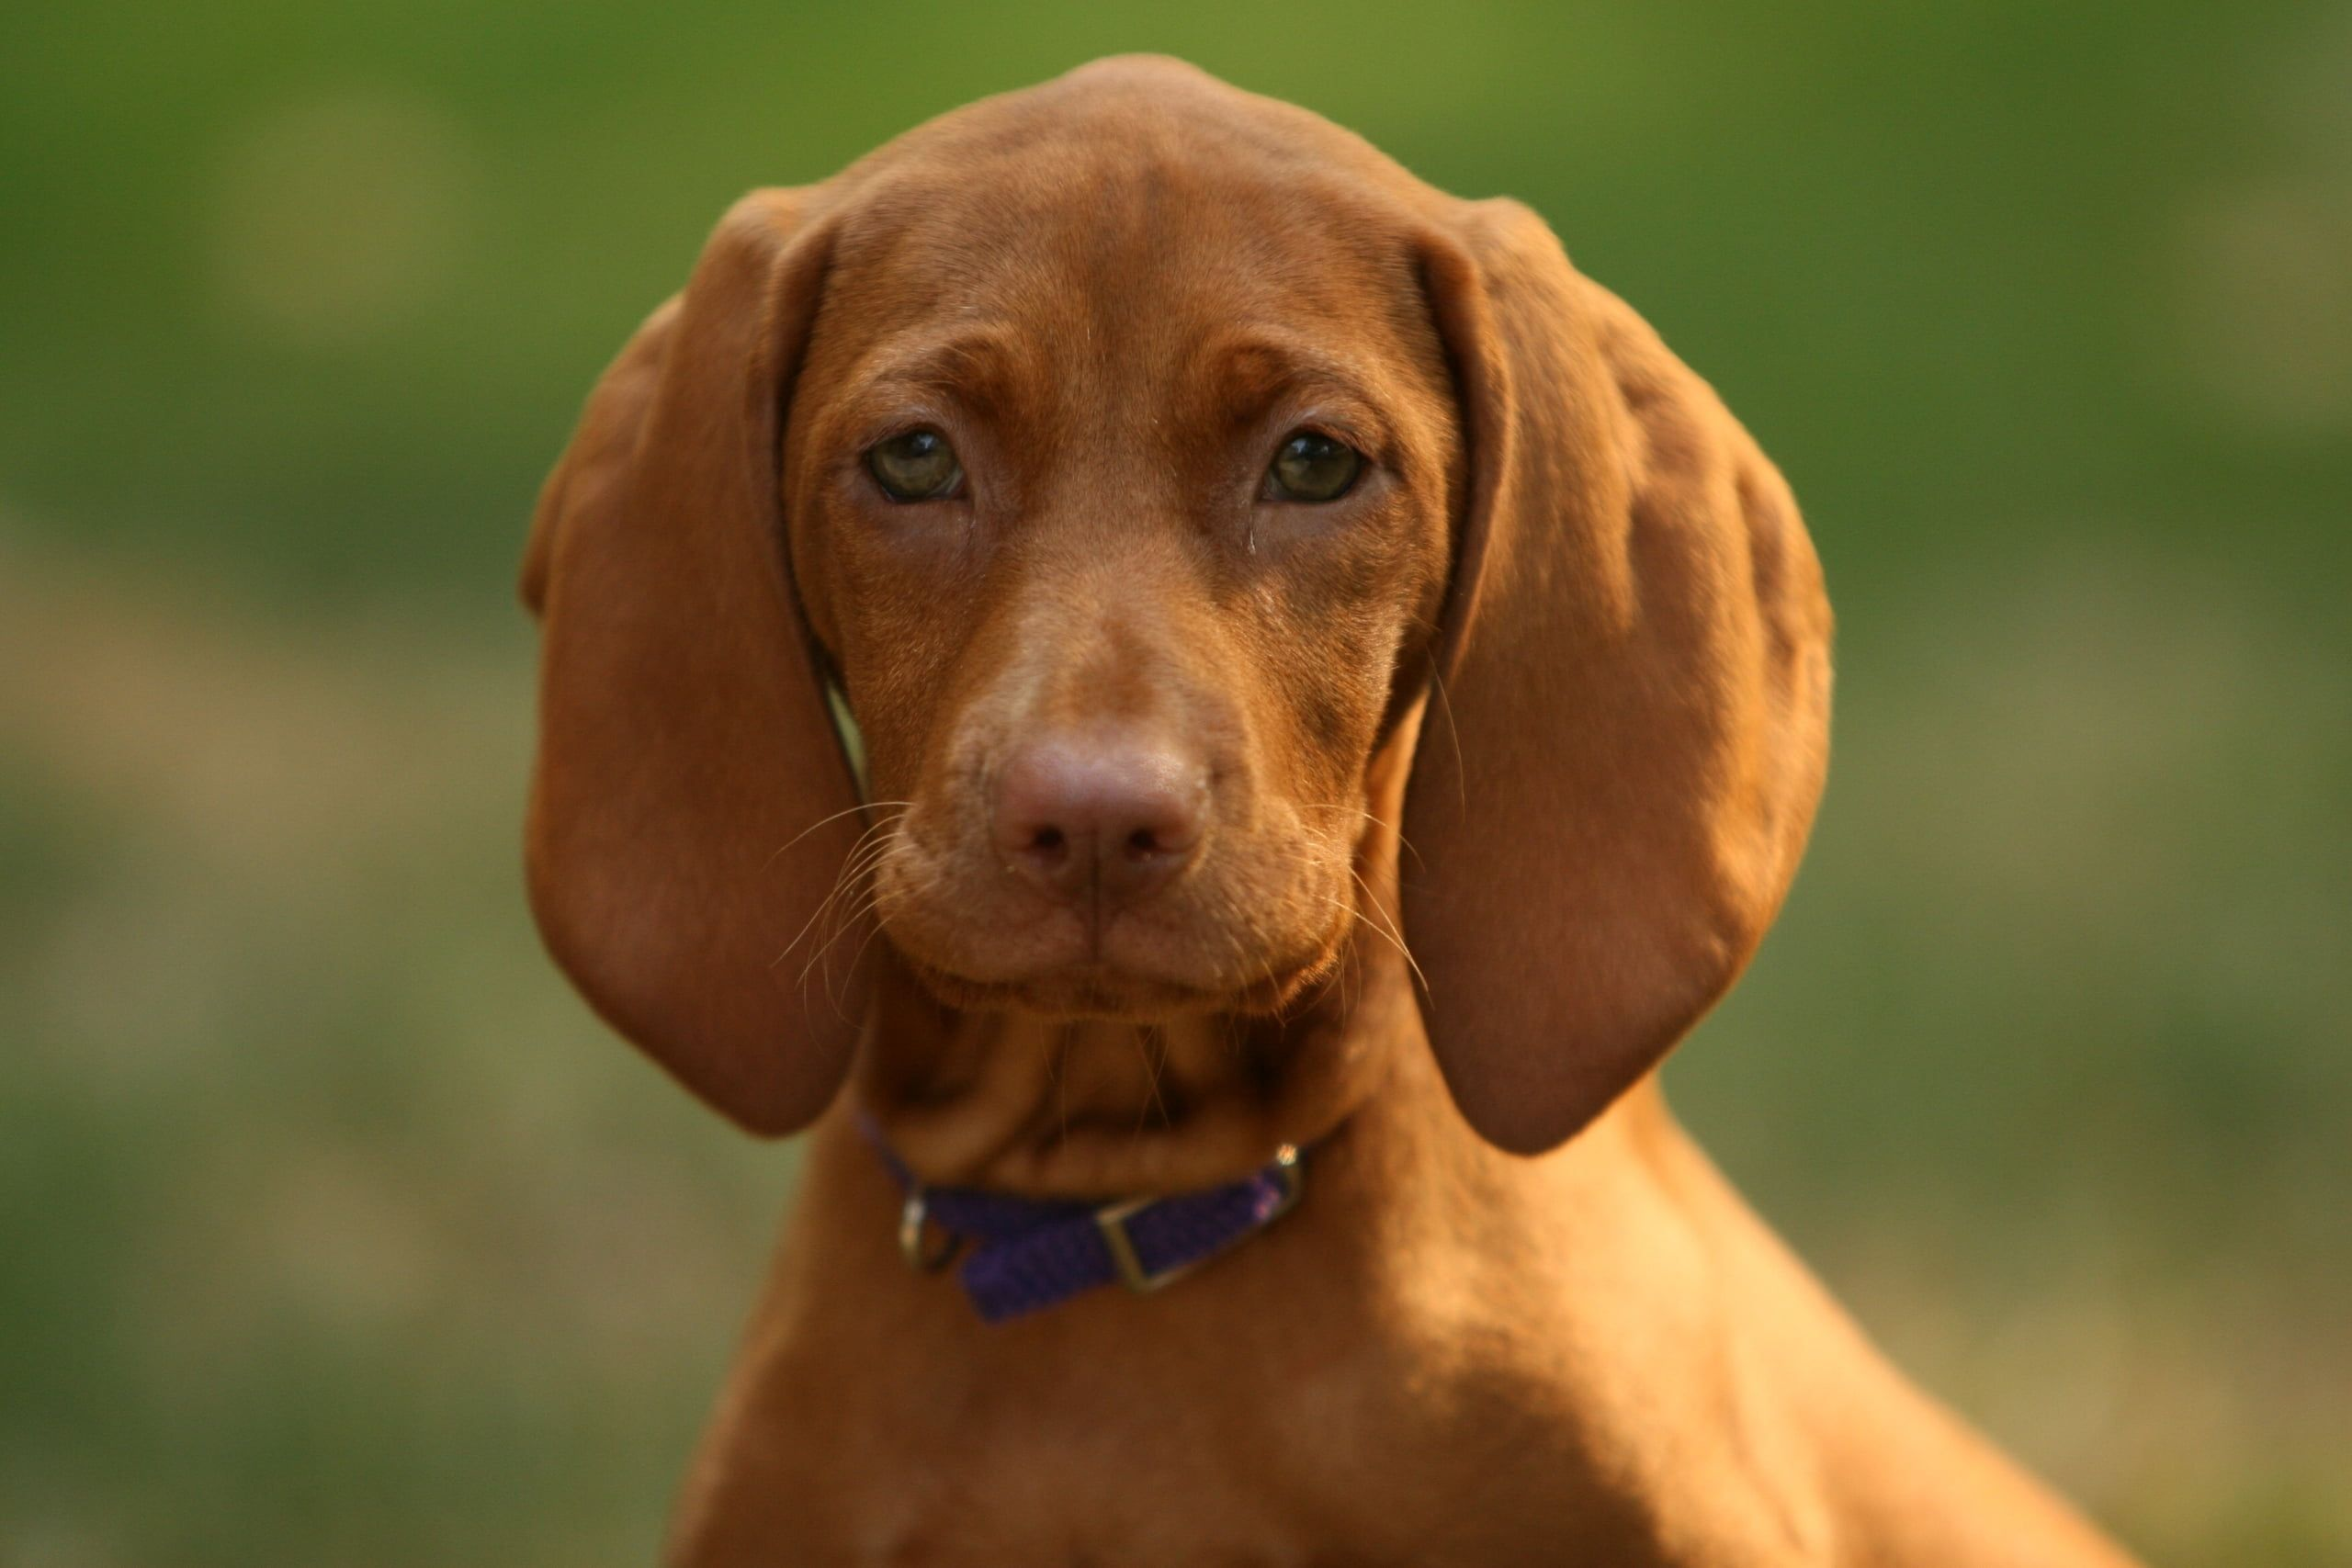 Have You Seen This Fantastic Pic 3 In 2020 With Images Vizsla Redbone Coonhound Dogs